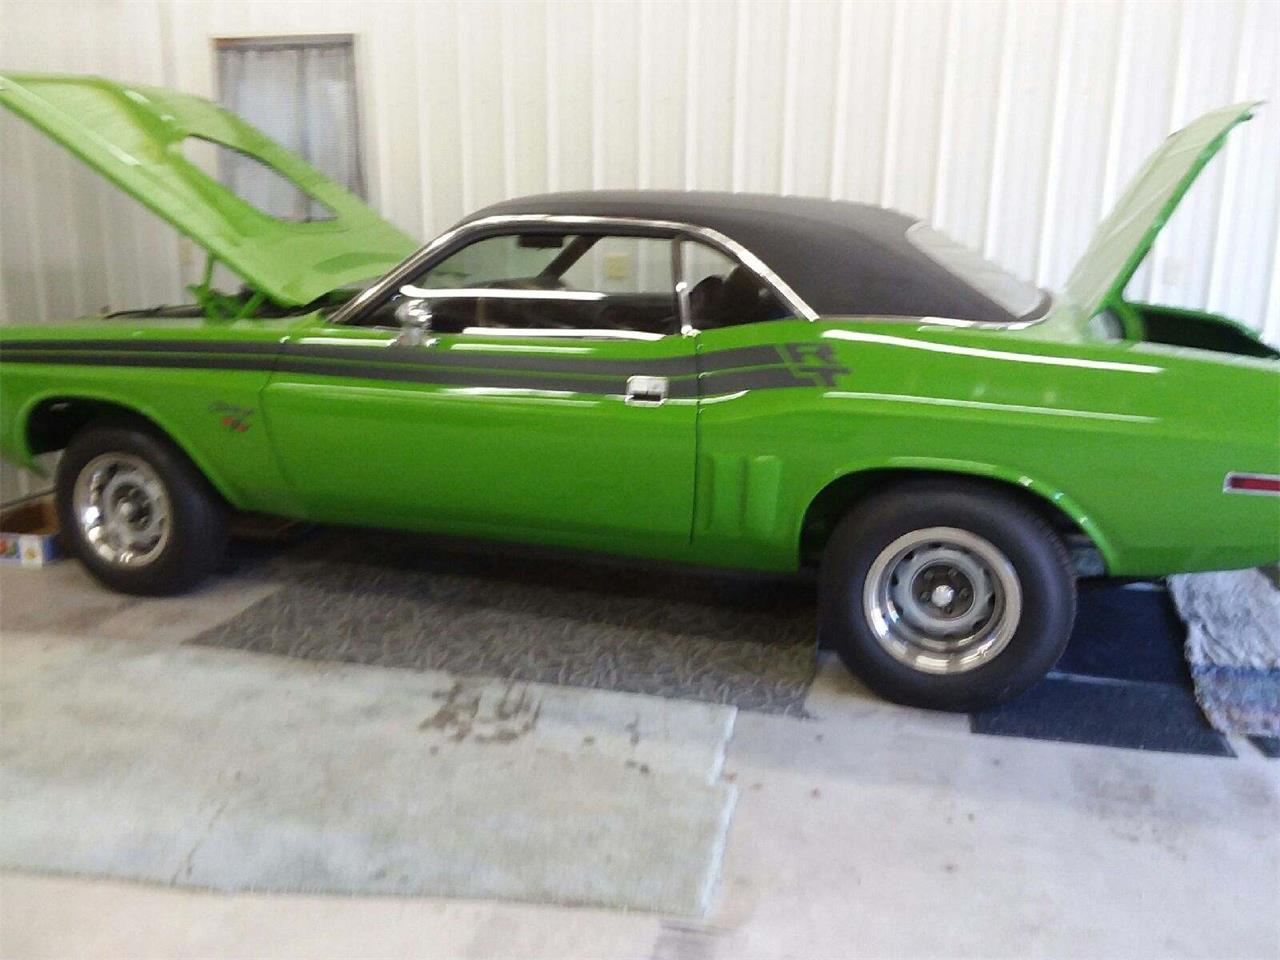 1971 Dodge Challenger R/T for sale in Waterford, PA – photo 10